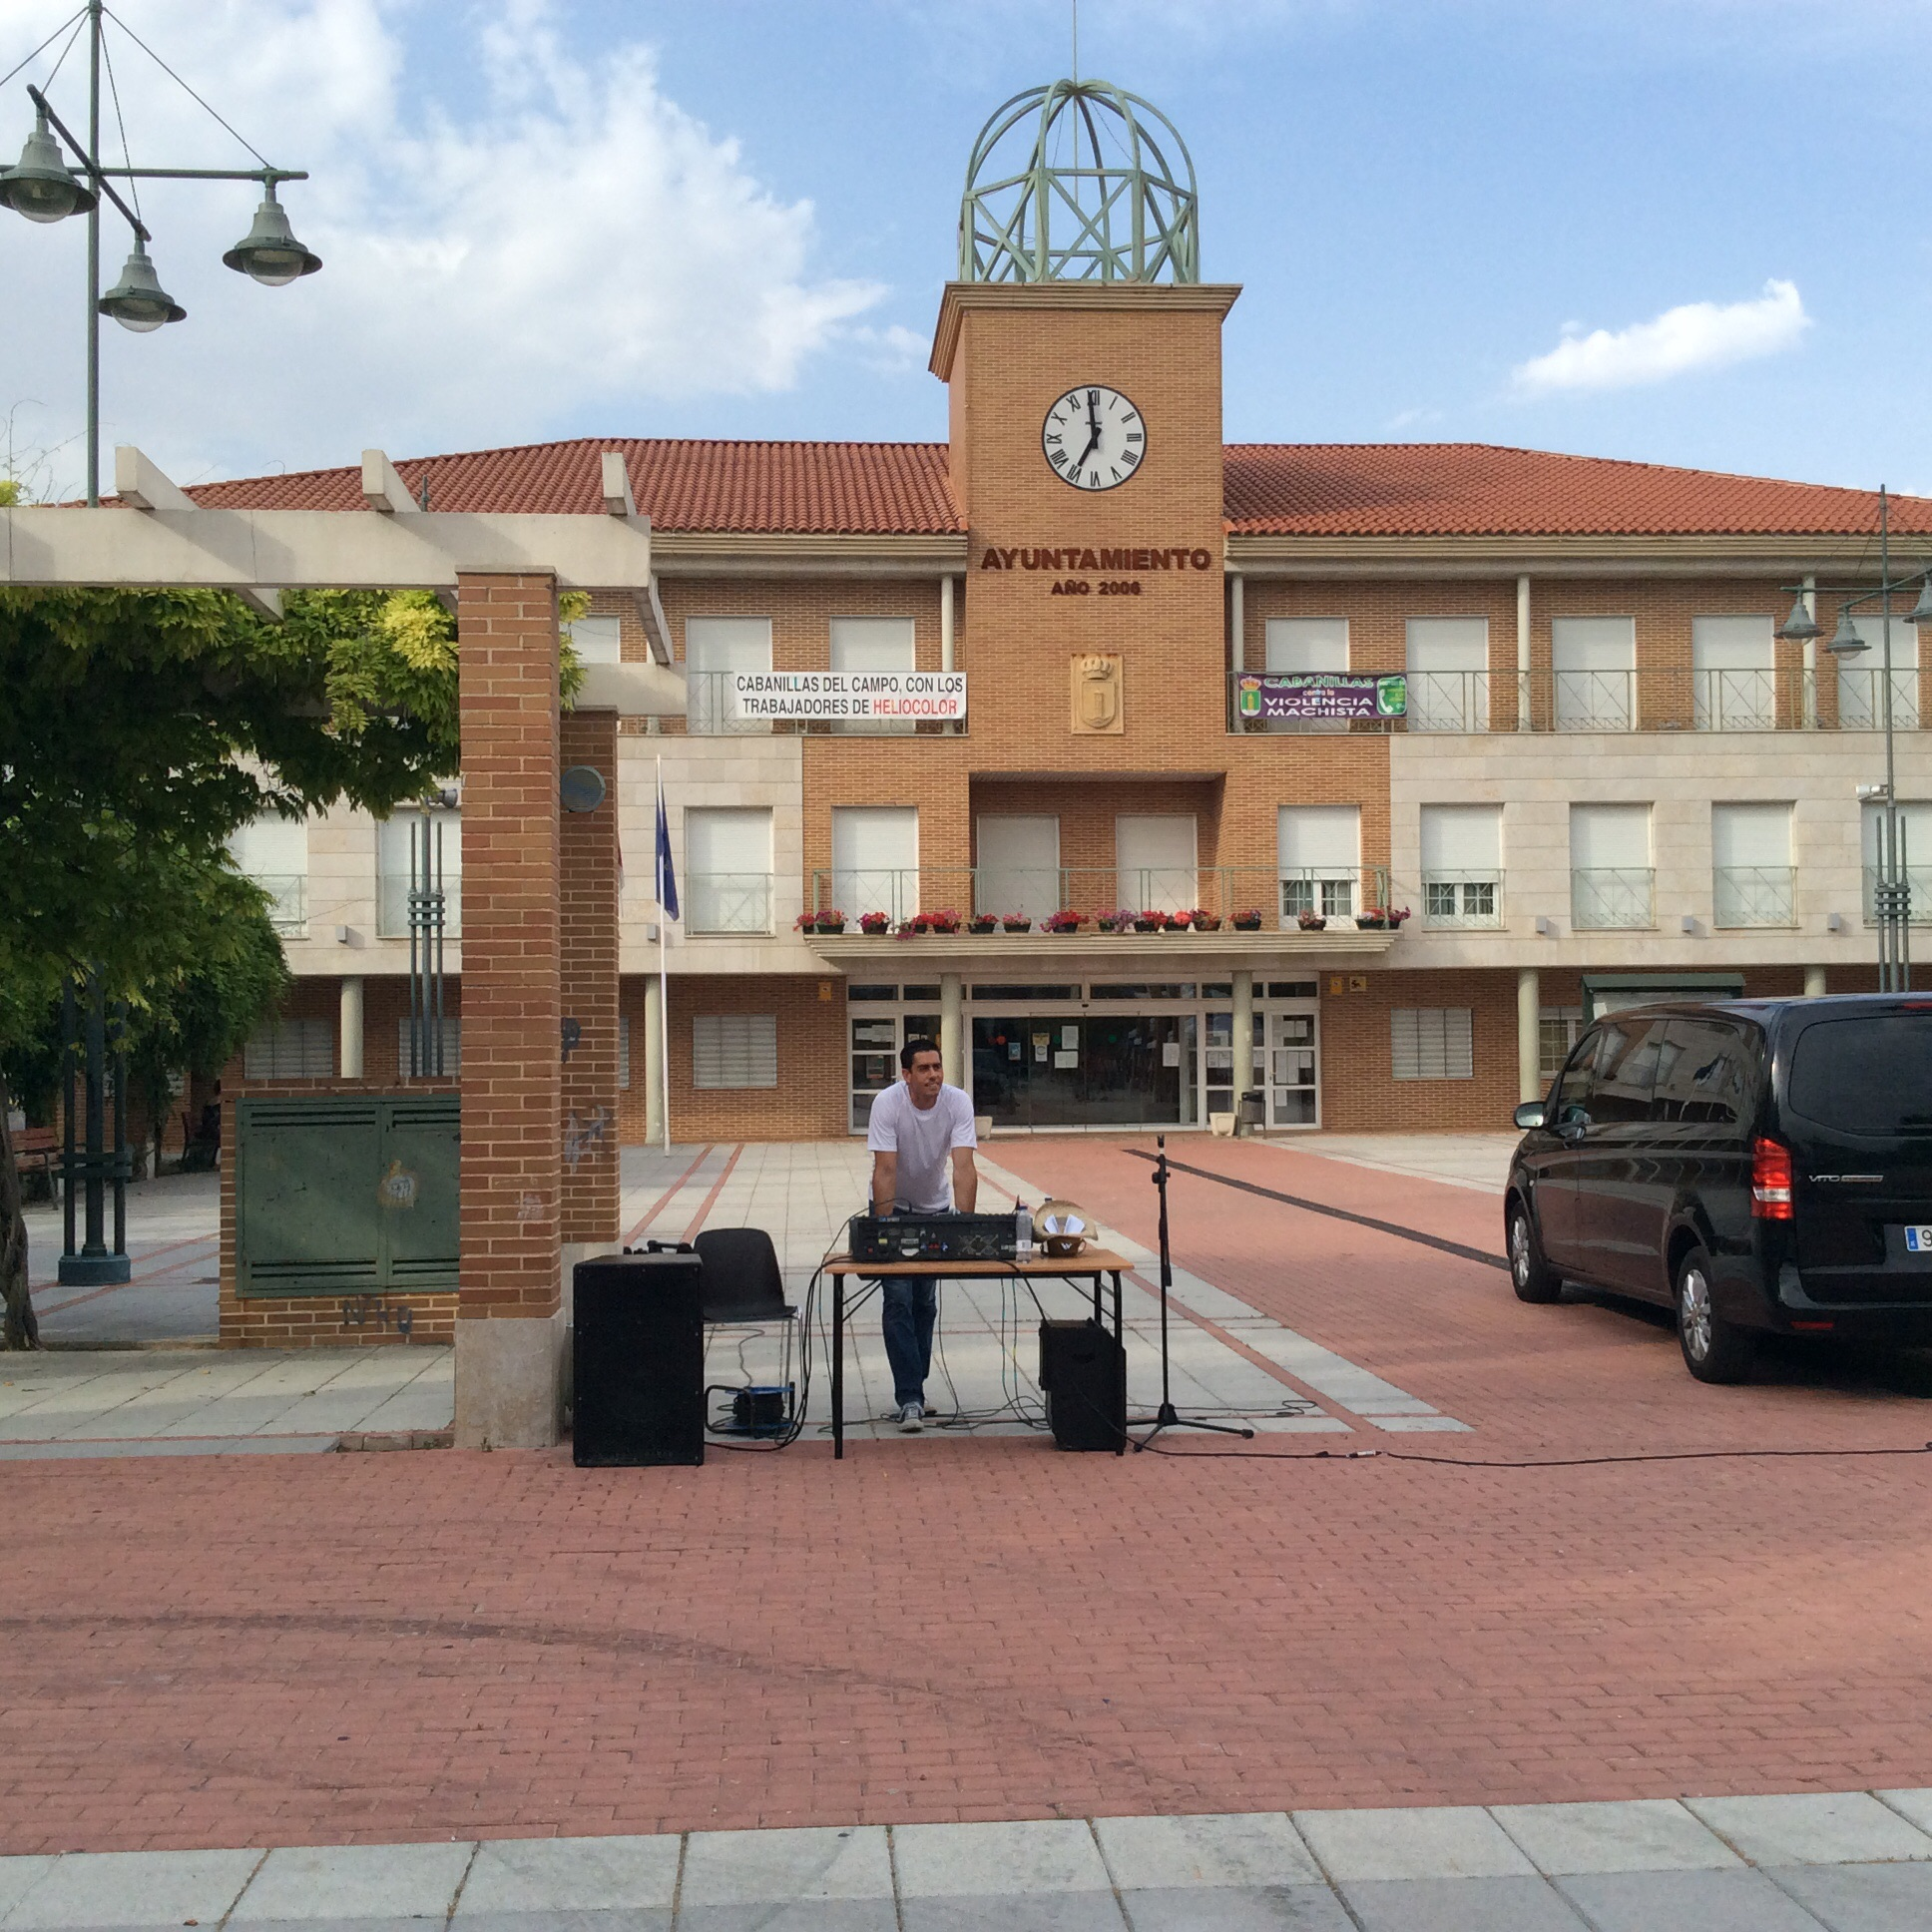 DJ Manny spinning country tunes in front of city hall.